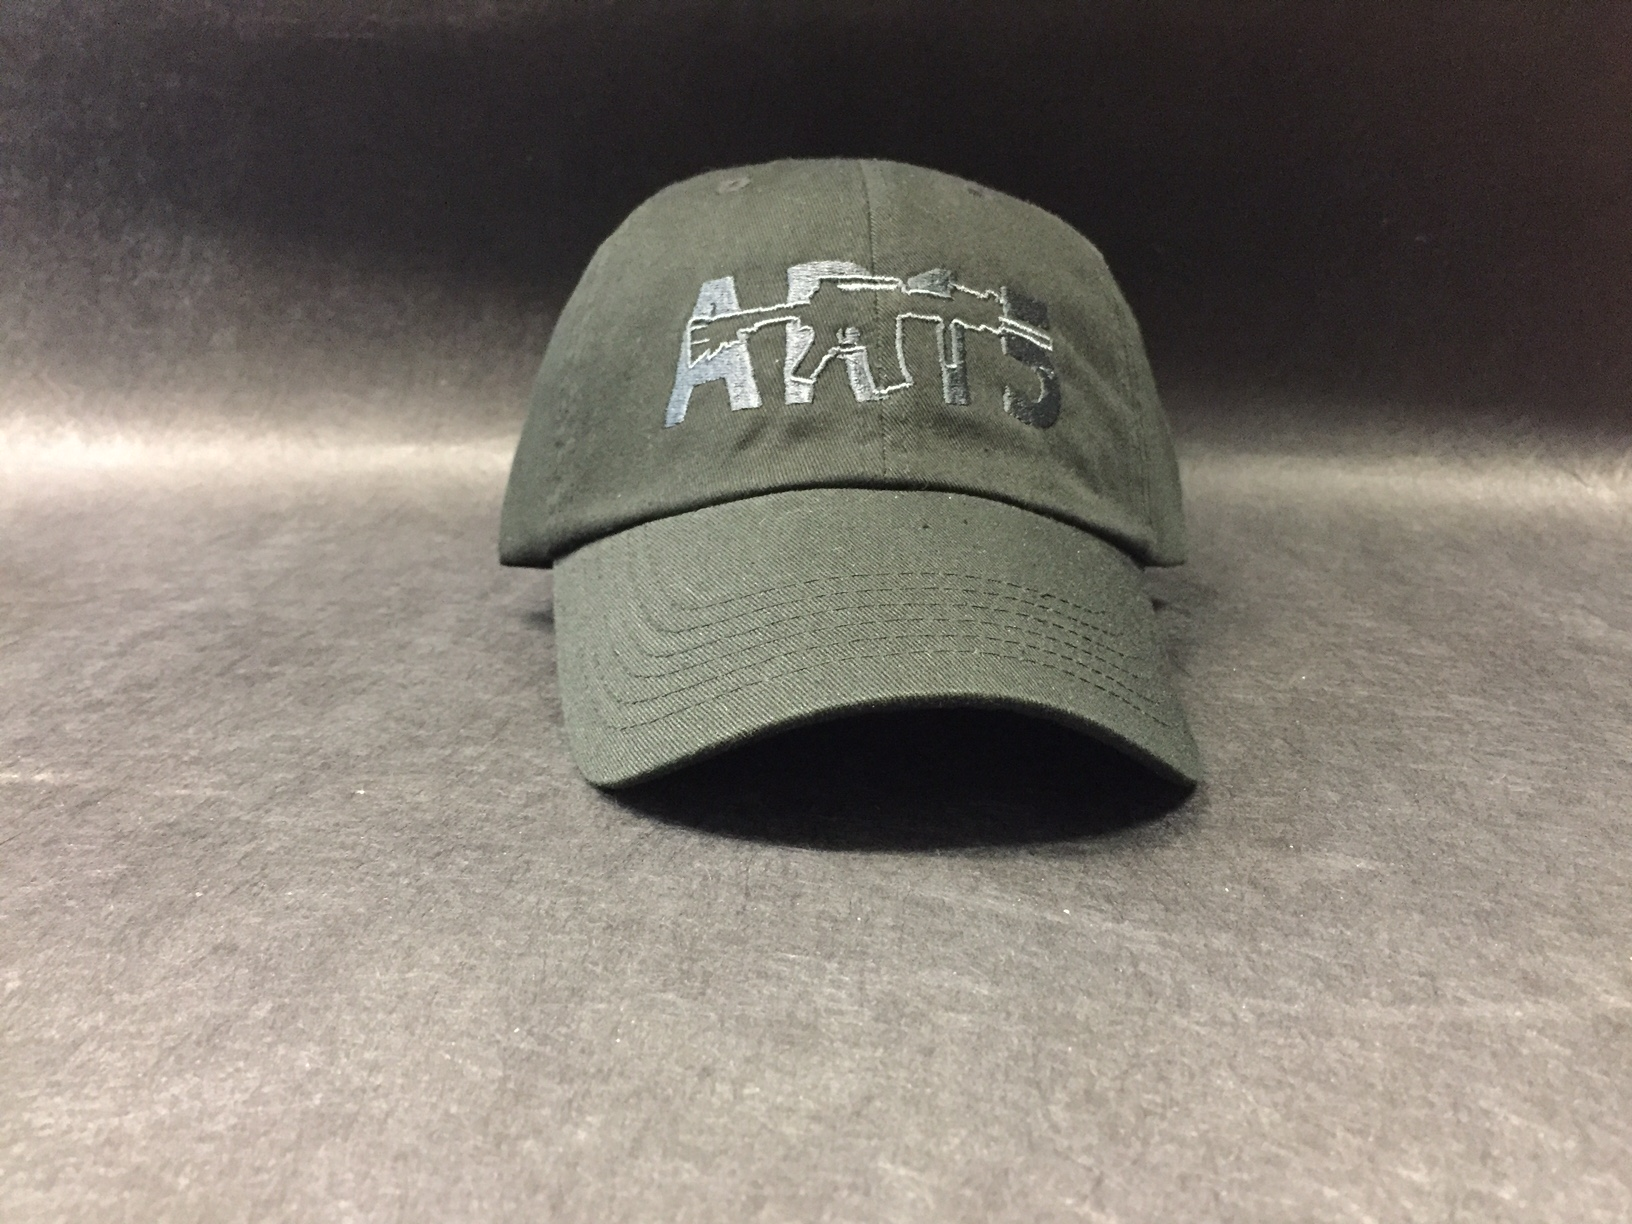 AR-15 Black w//DK Charcoal Hat Cap Pistol FirearmRifle Weapon Embroidery